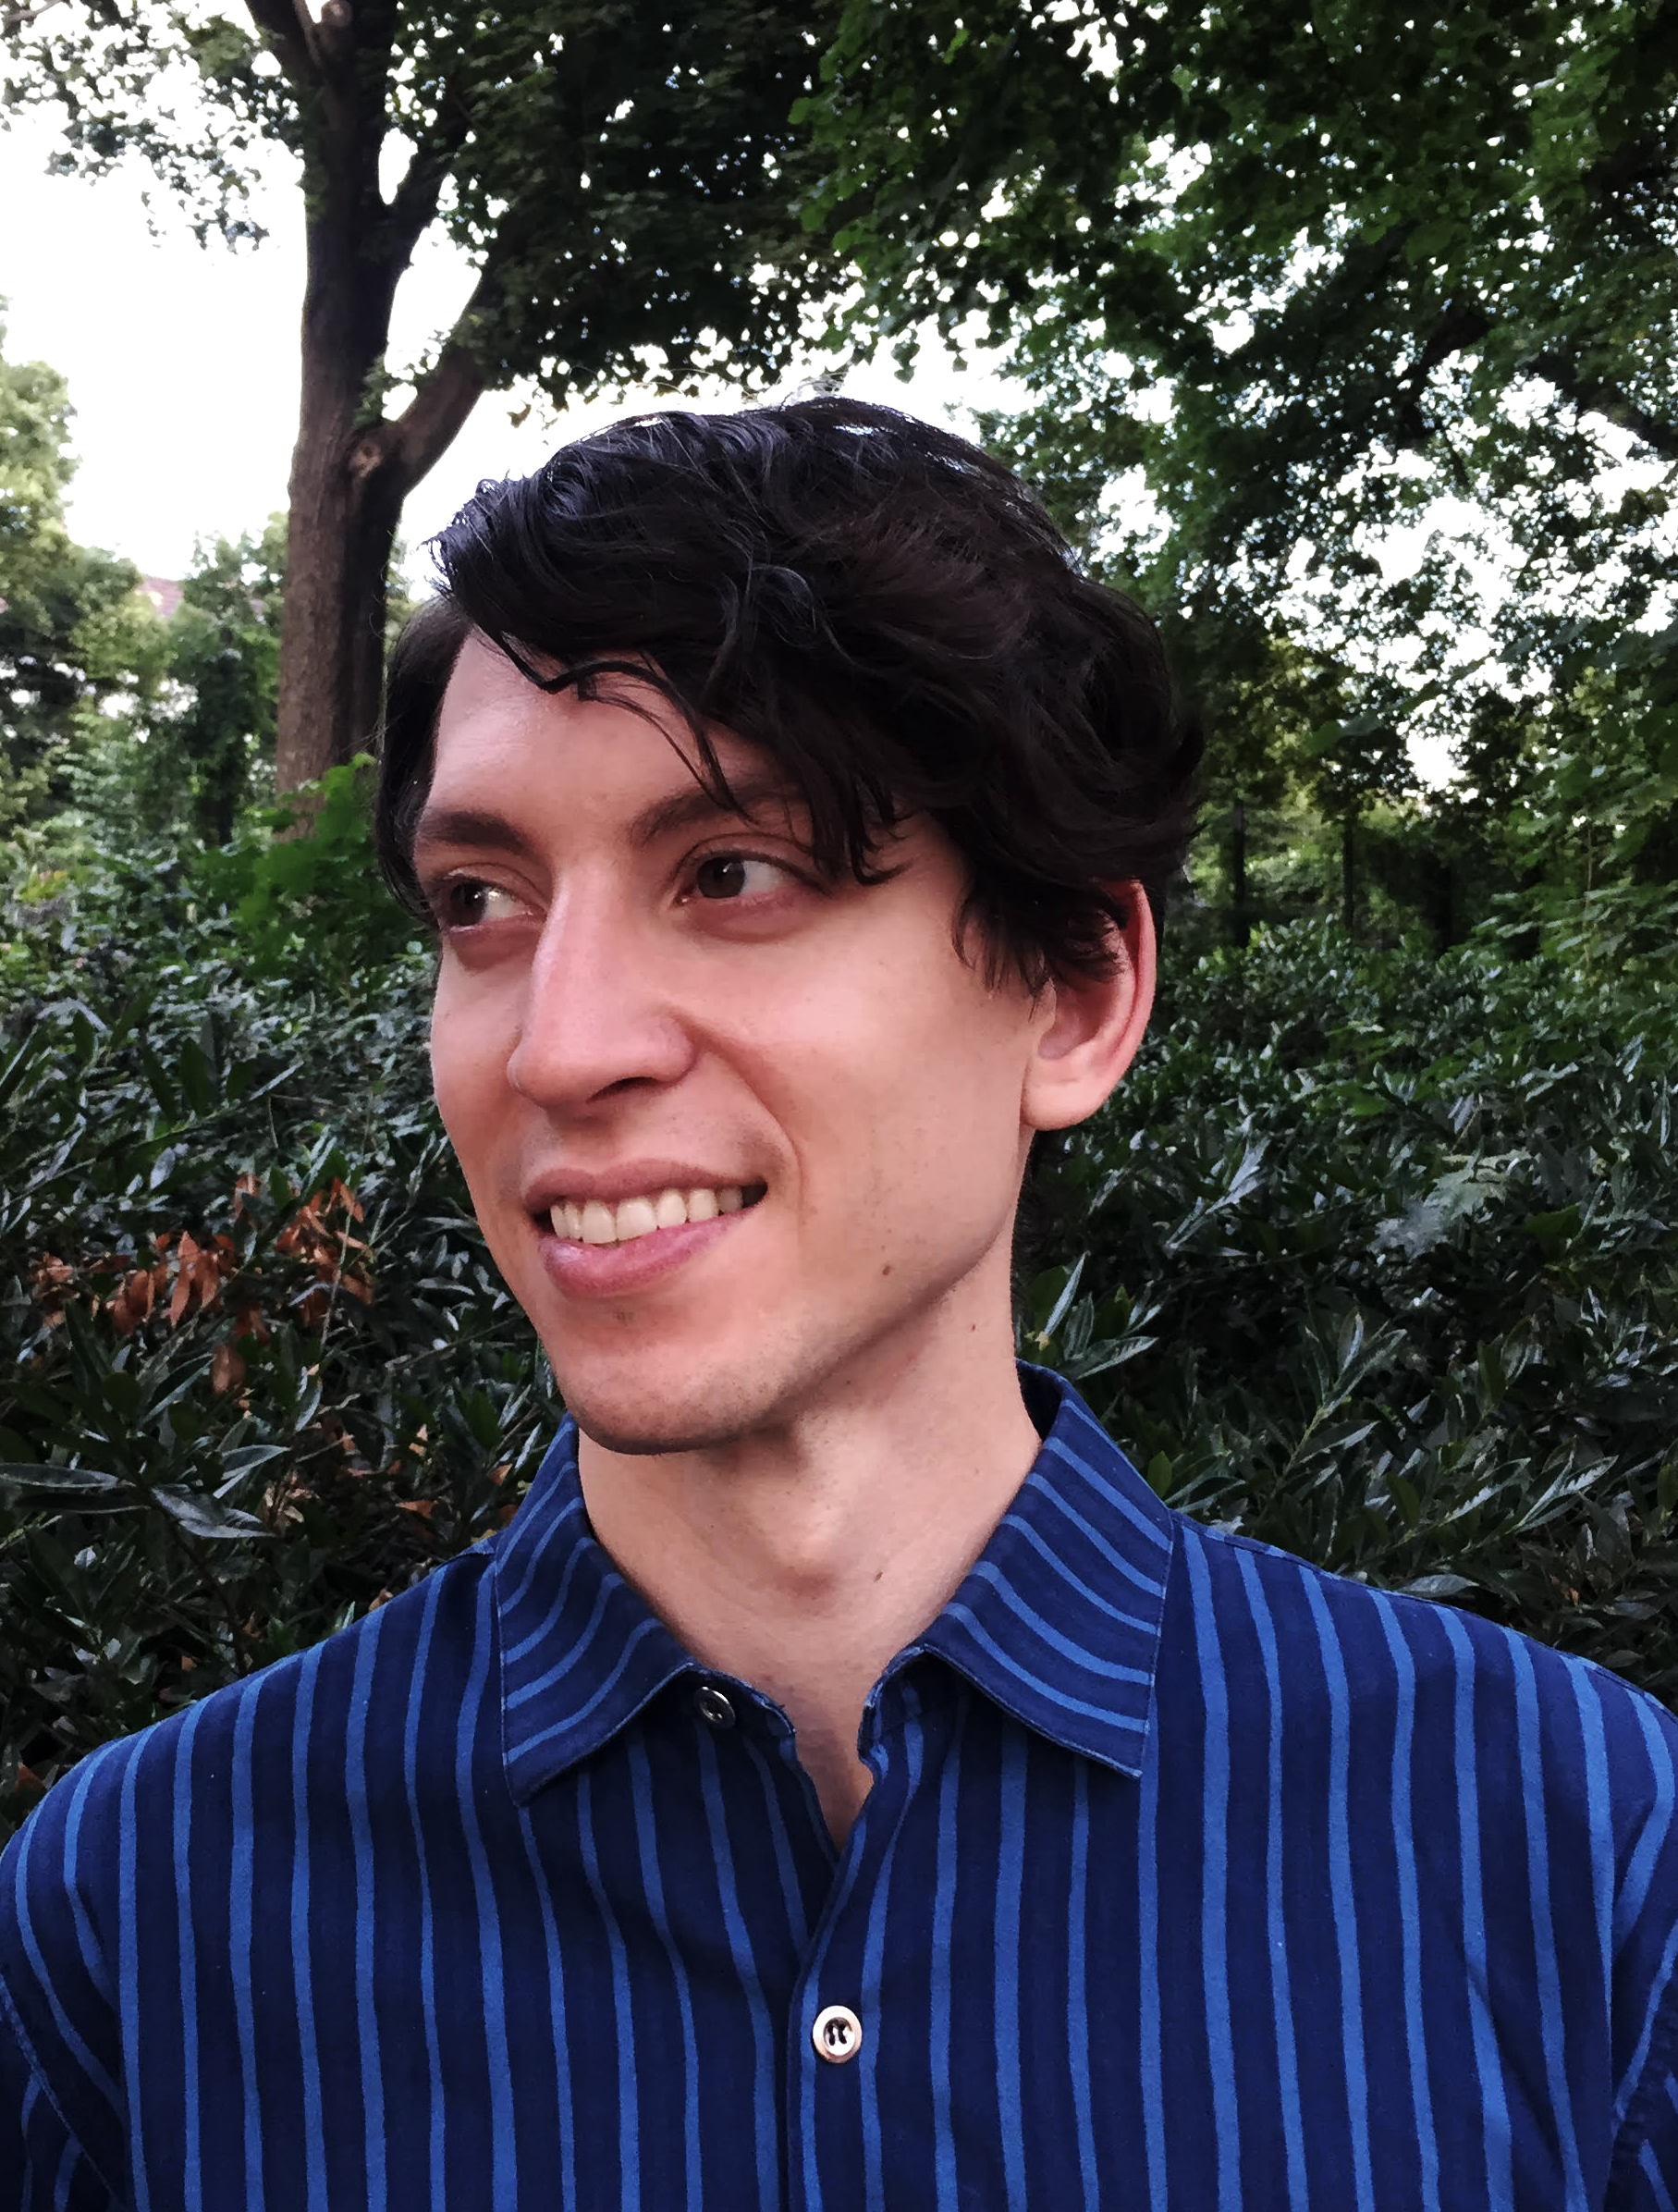 Caleb Salgado - New York University, Ph.D French Philosophy (2021)Freie Universität Berlin M.A. Comparative Literature and PhilosophyÉcole normale supérieure M.A. PhilosophyHartford University B.A. Romance LanguagesHartt School of Music B.M. Music PerformanceOver the past decade, Caleb has drawn inspiration from teaching over 70 students in French, German, and philosophy, in addition to writing skills, standardized testing and AP Exams. As a scholar in Berlin and Paris, Caleb has worked on literature, logic, science and political philosophy. Caleb's background as a musician, both as a double bass player and composer of experimental music, has taught him the value of earnest dedication to the craft of study.